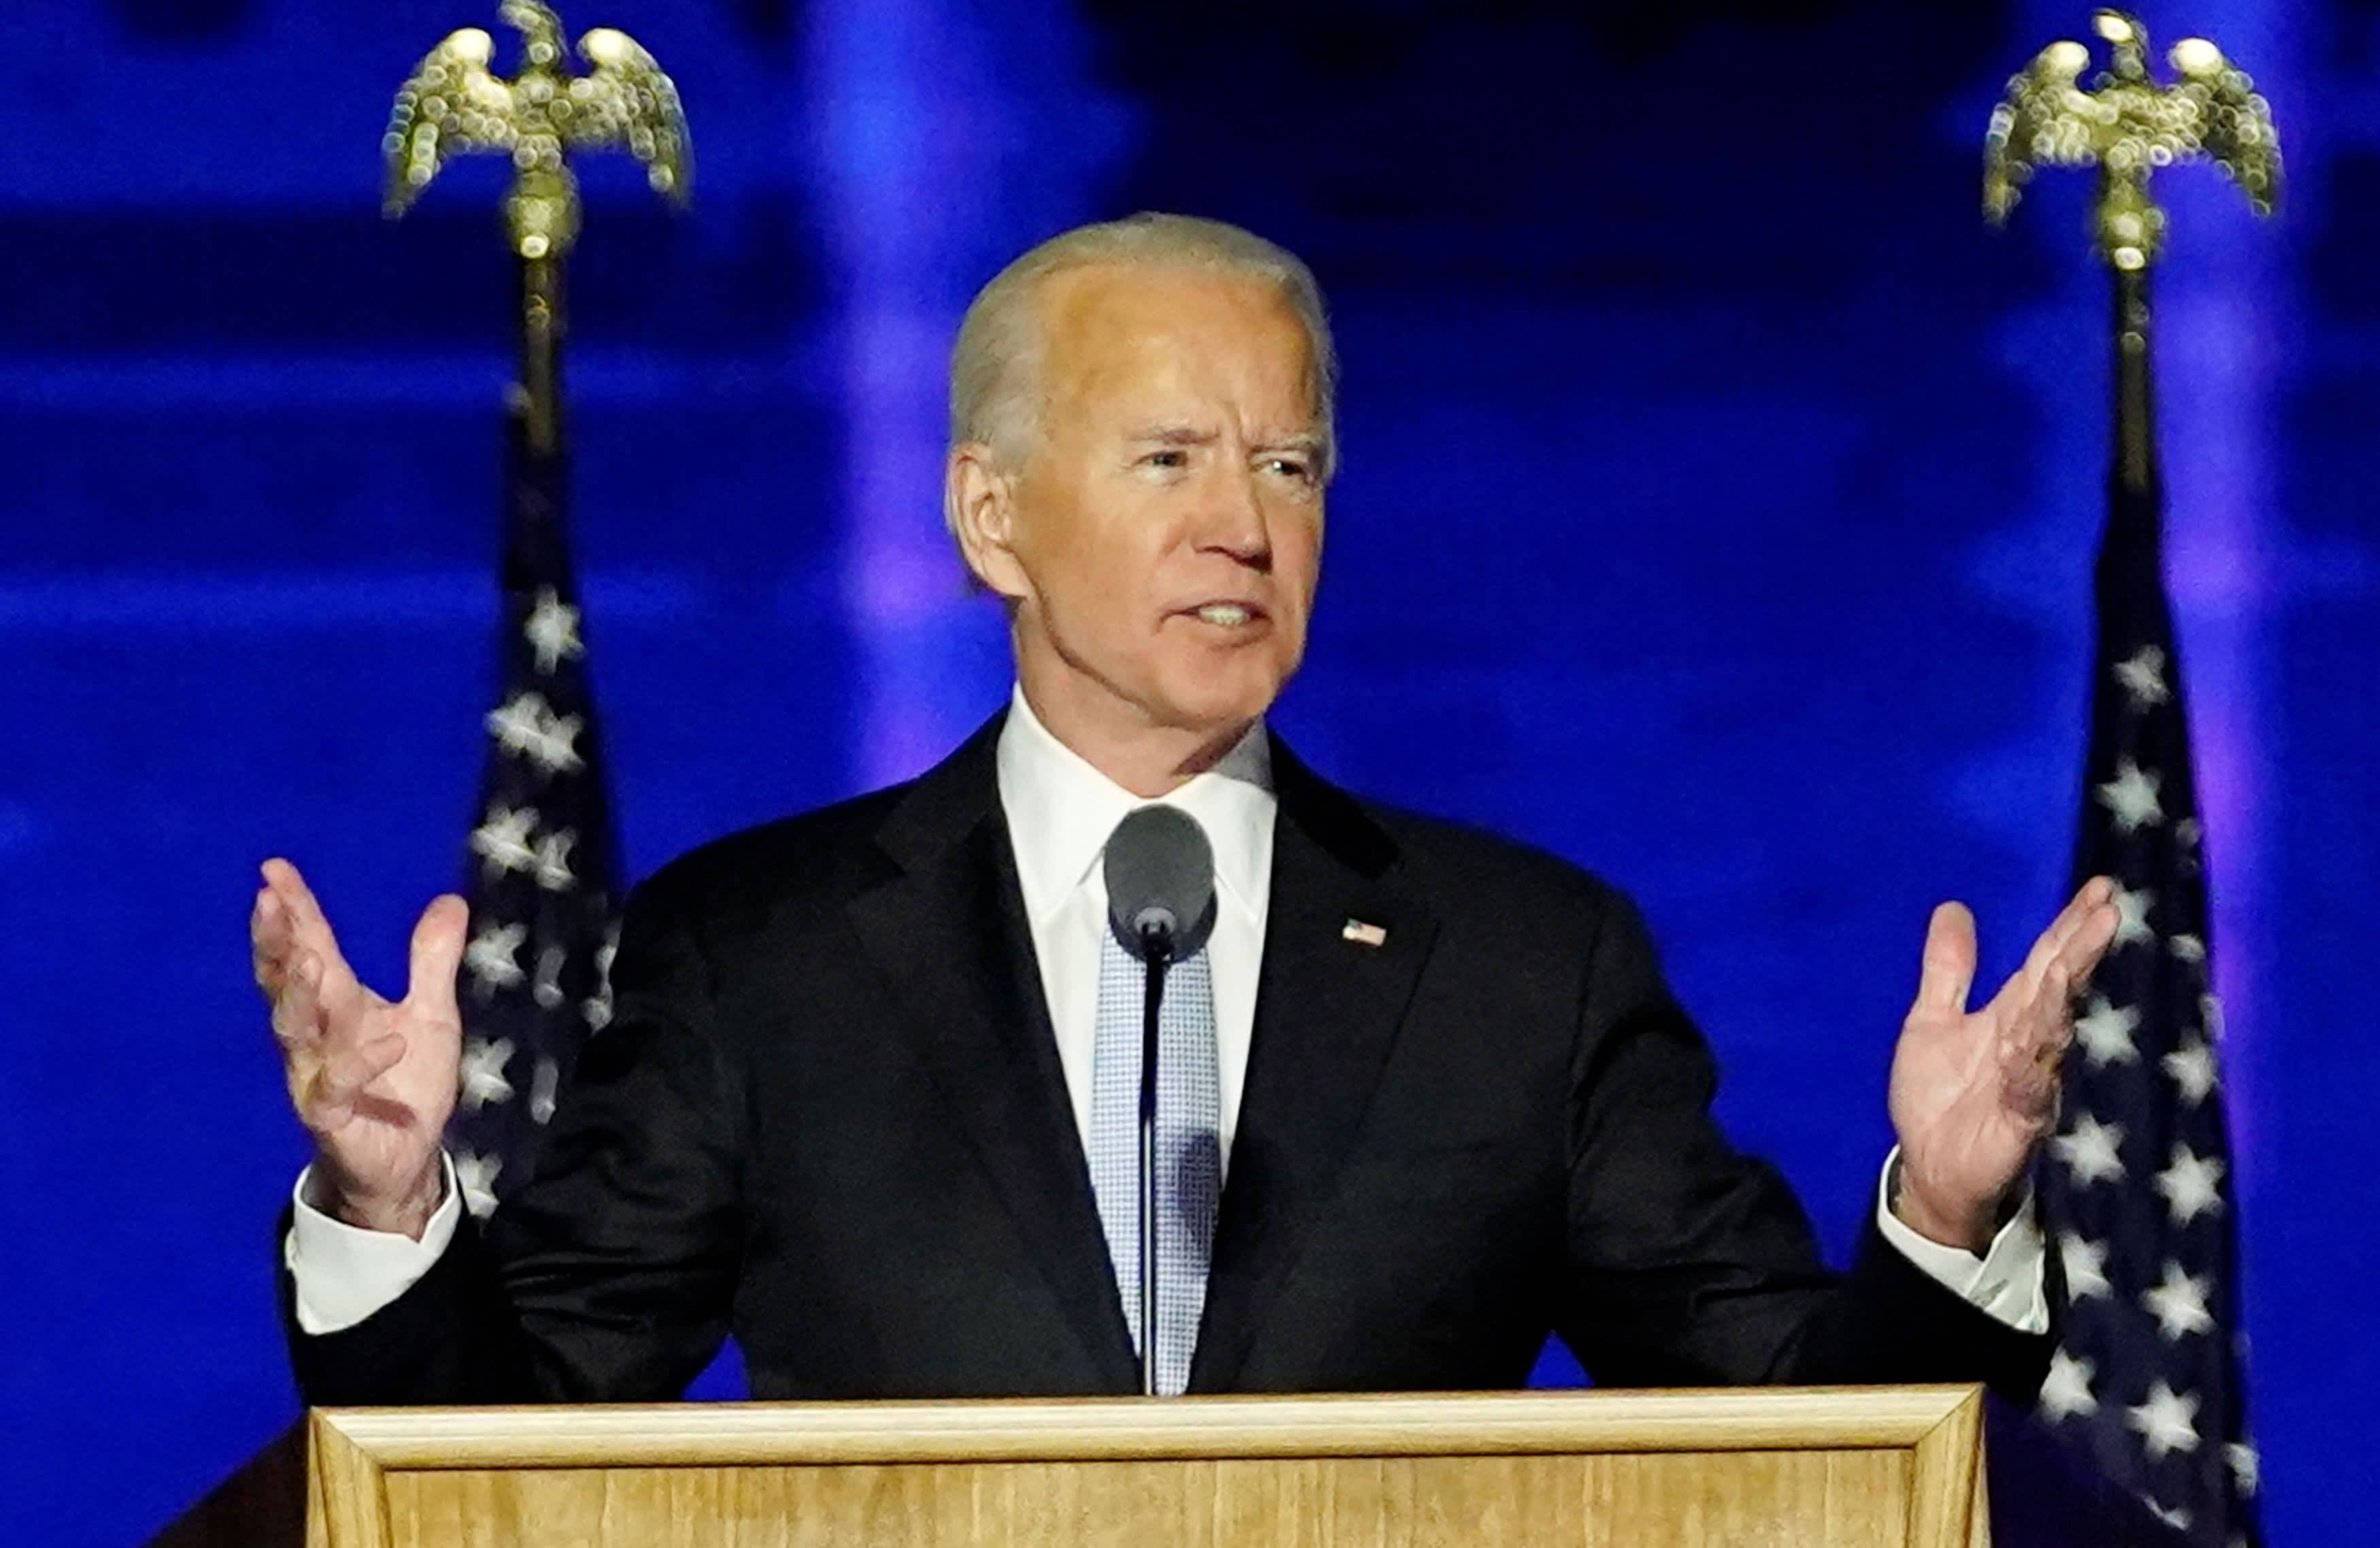 Watch Joe Biden, in his first speech as president-elect, urges unity: 'Time to heal in America'